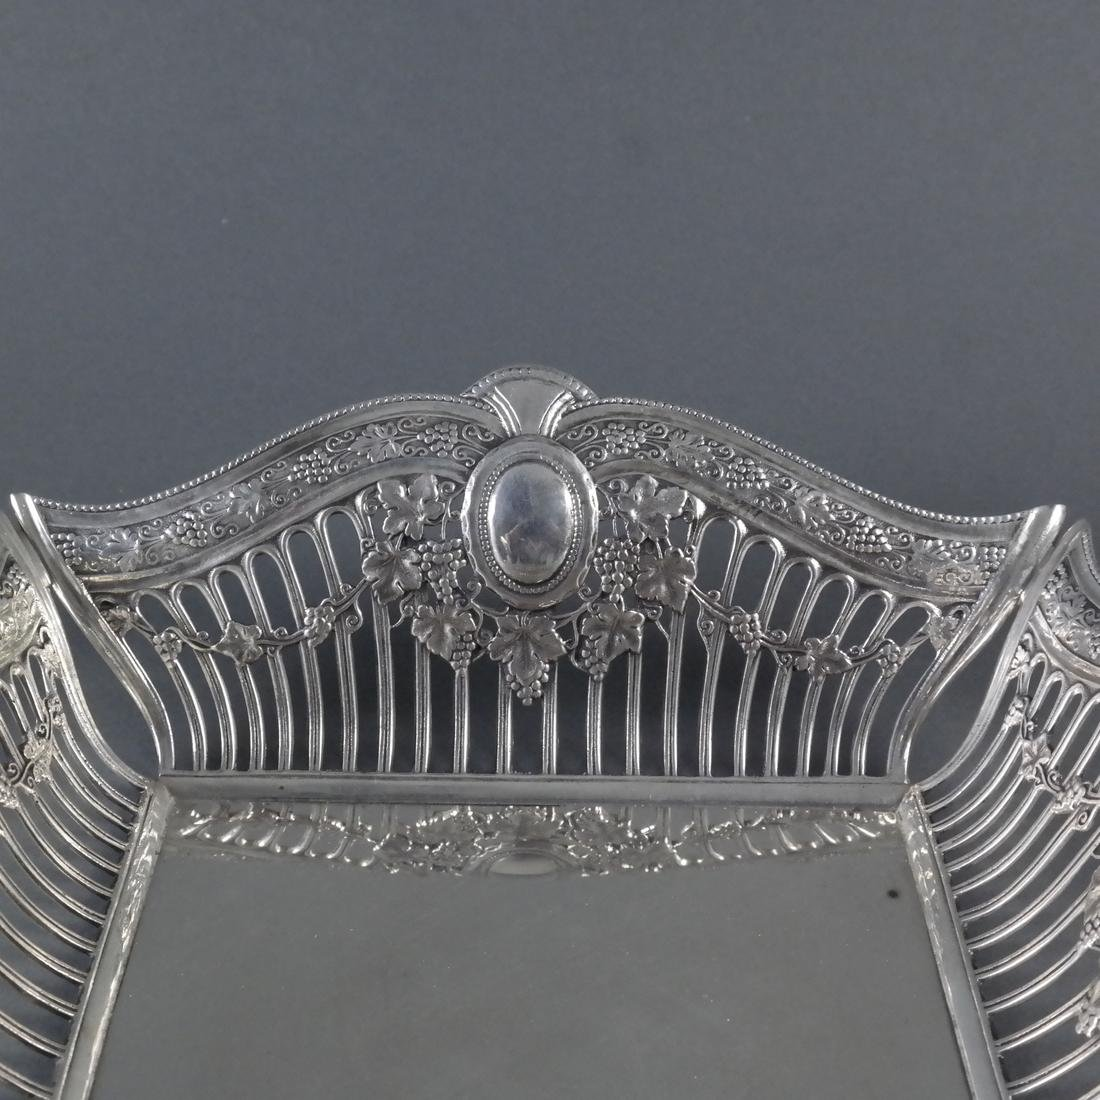 .900 Standard Silver Reticulated Basket - 5